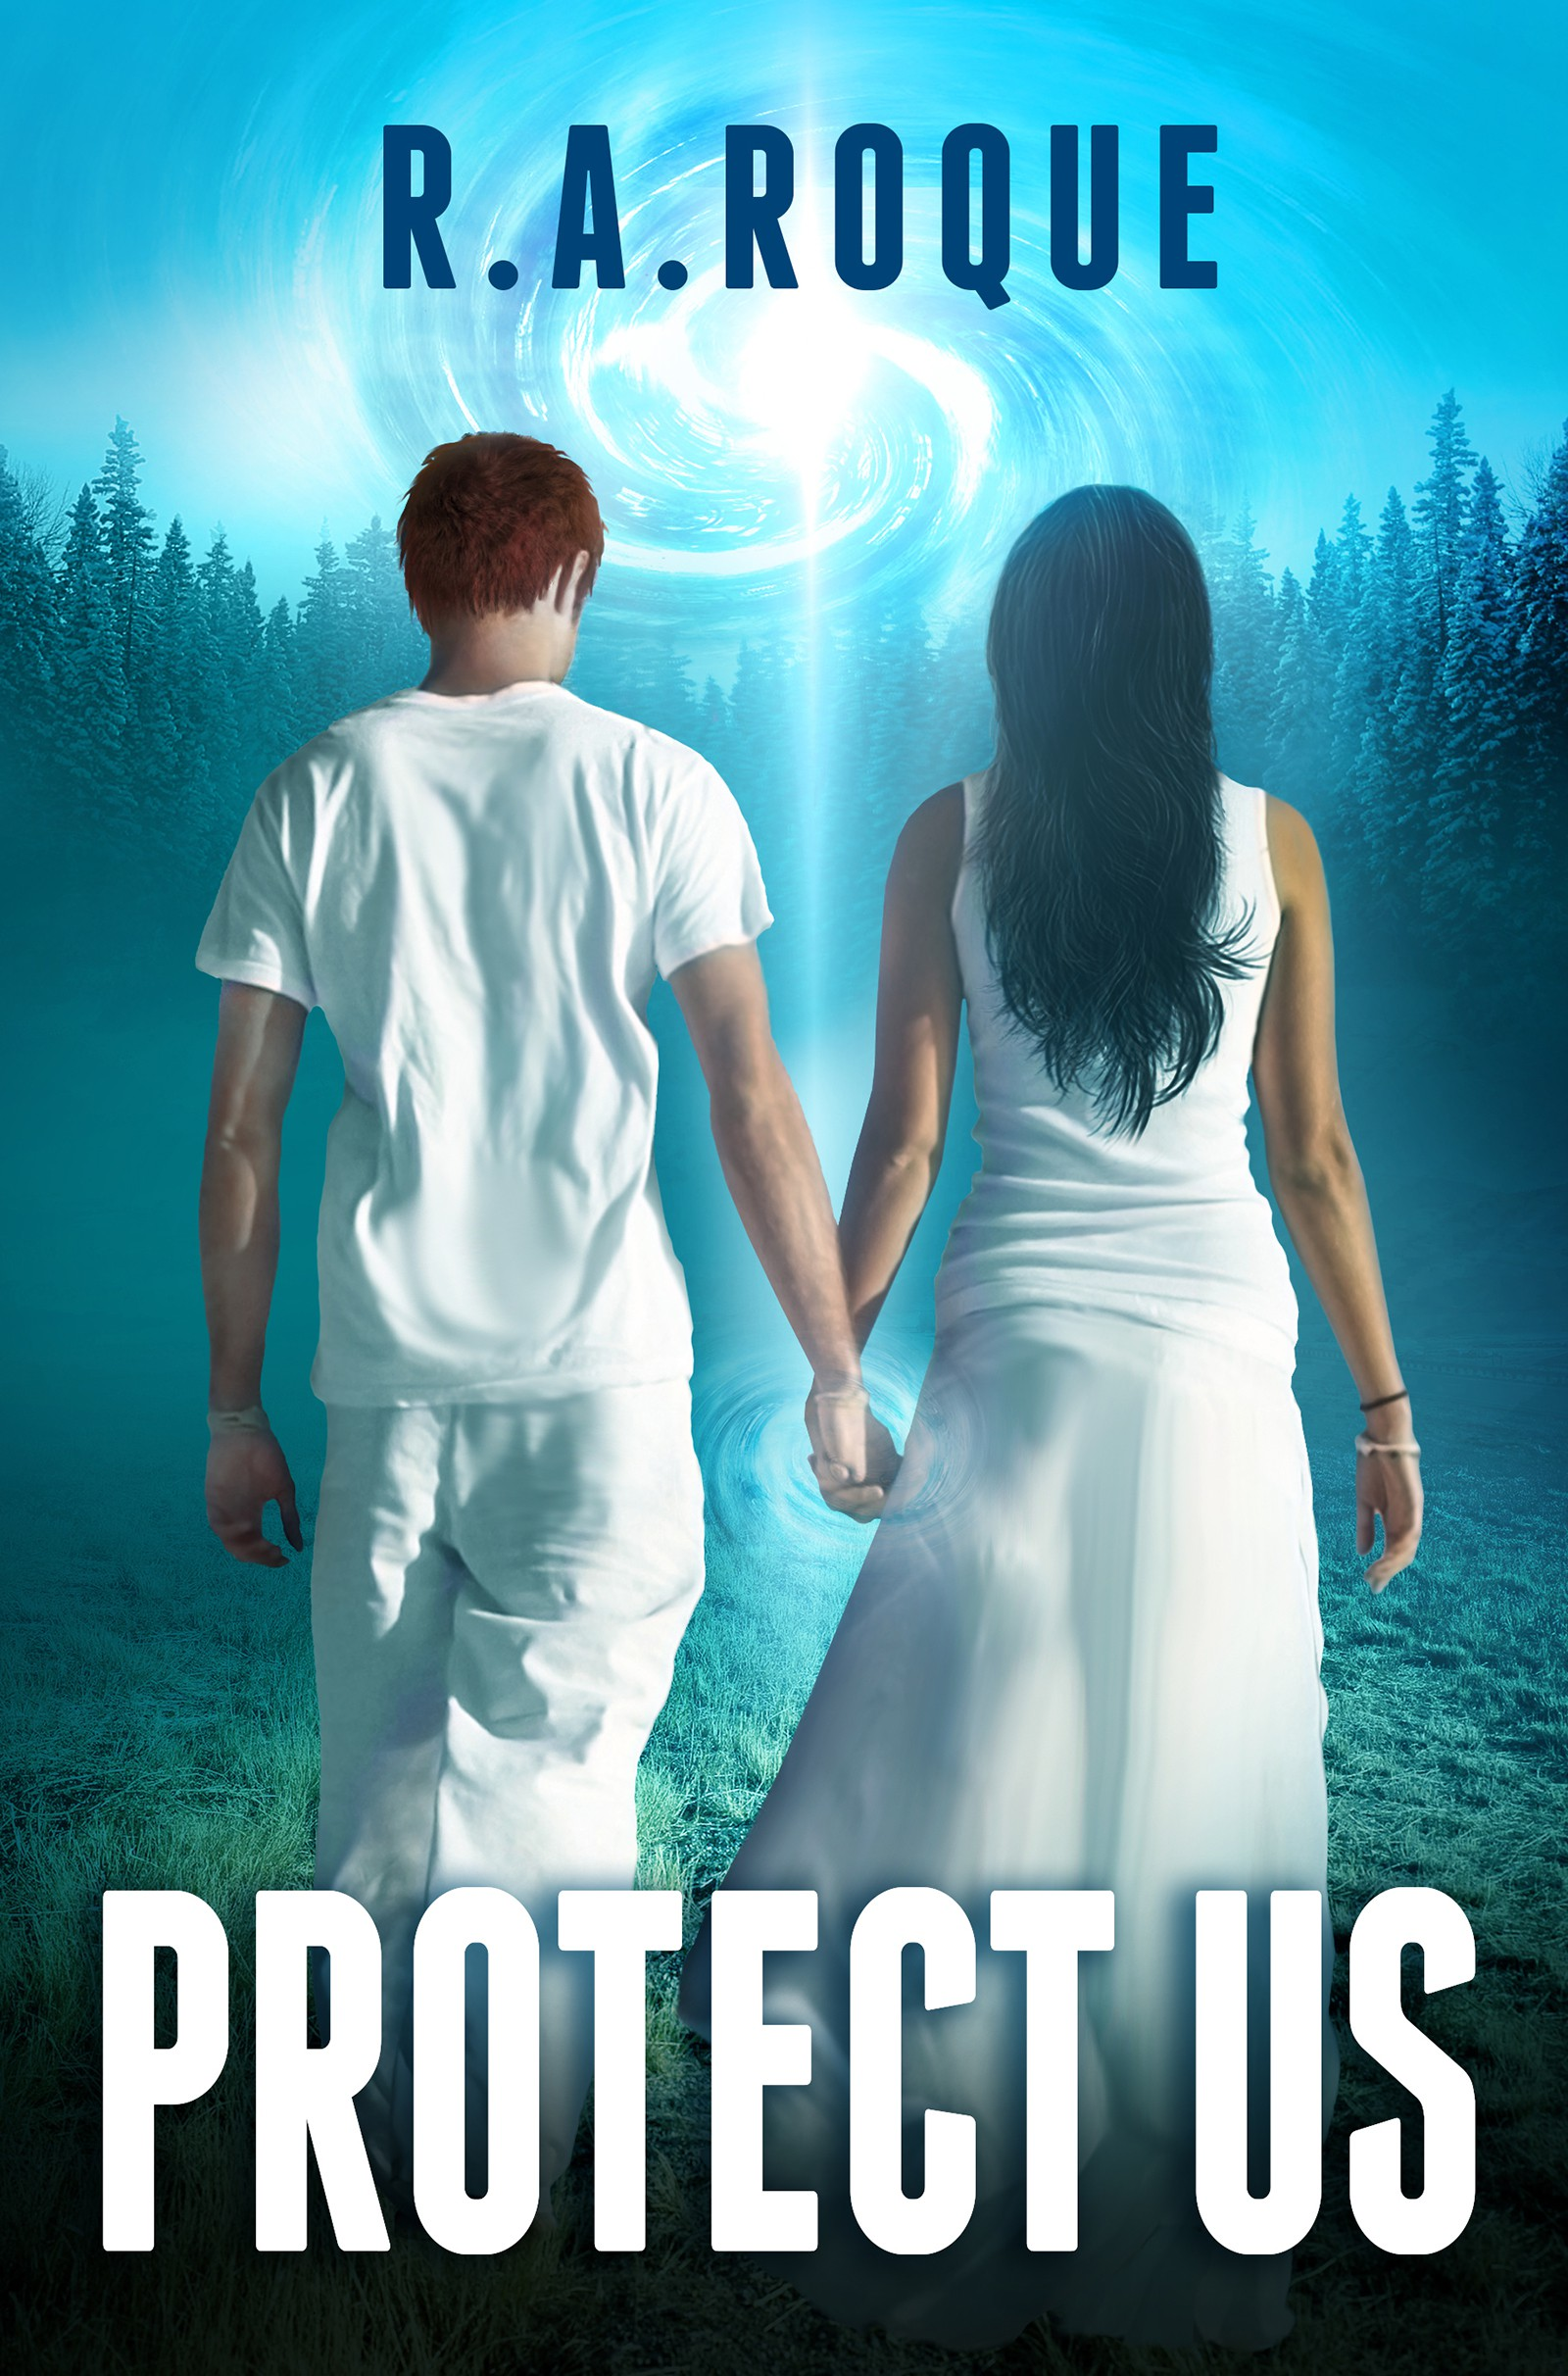 Book Cover - science fiction ROMANCE